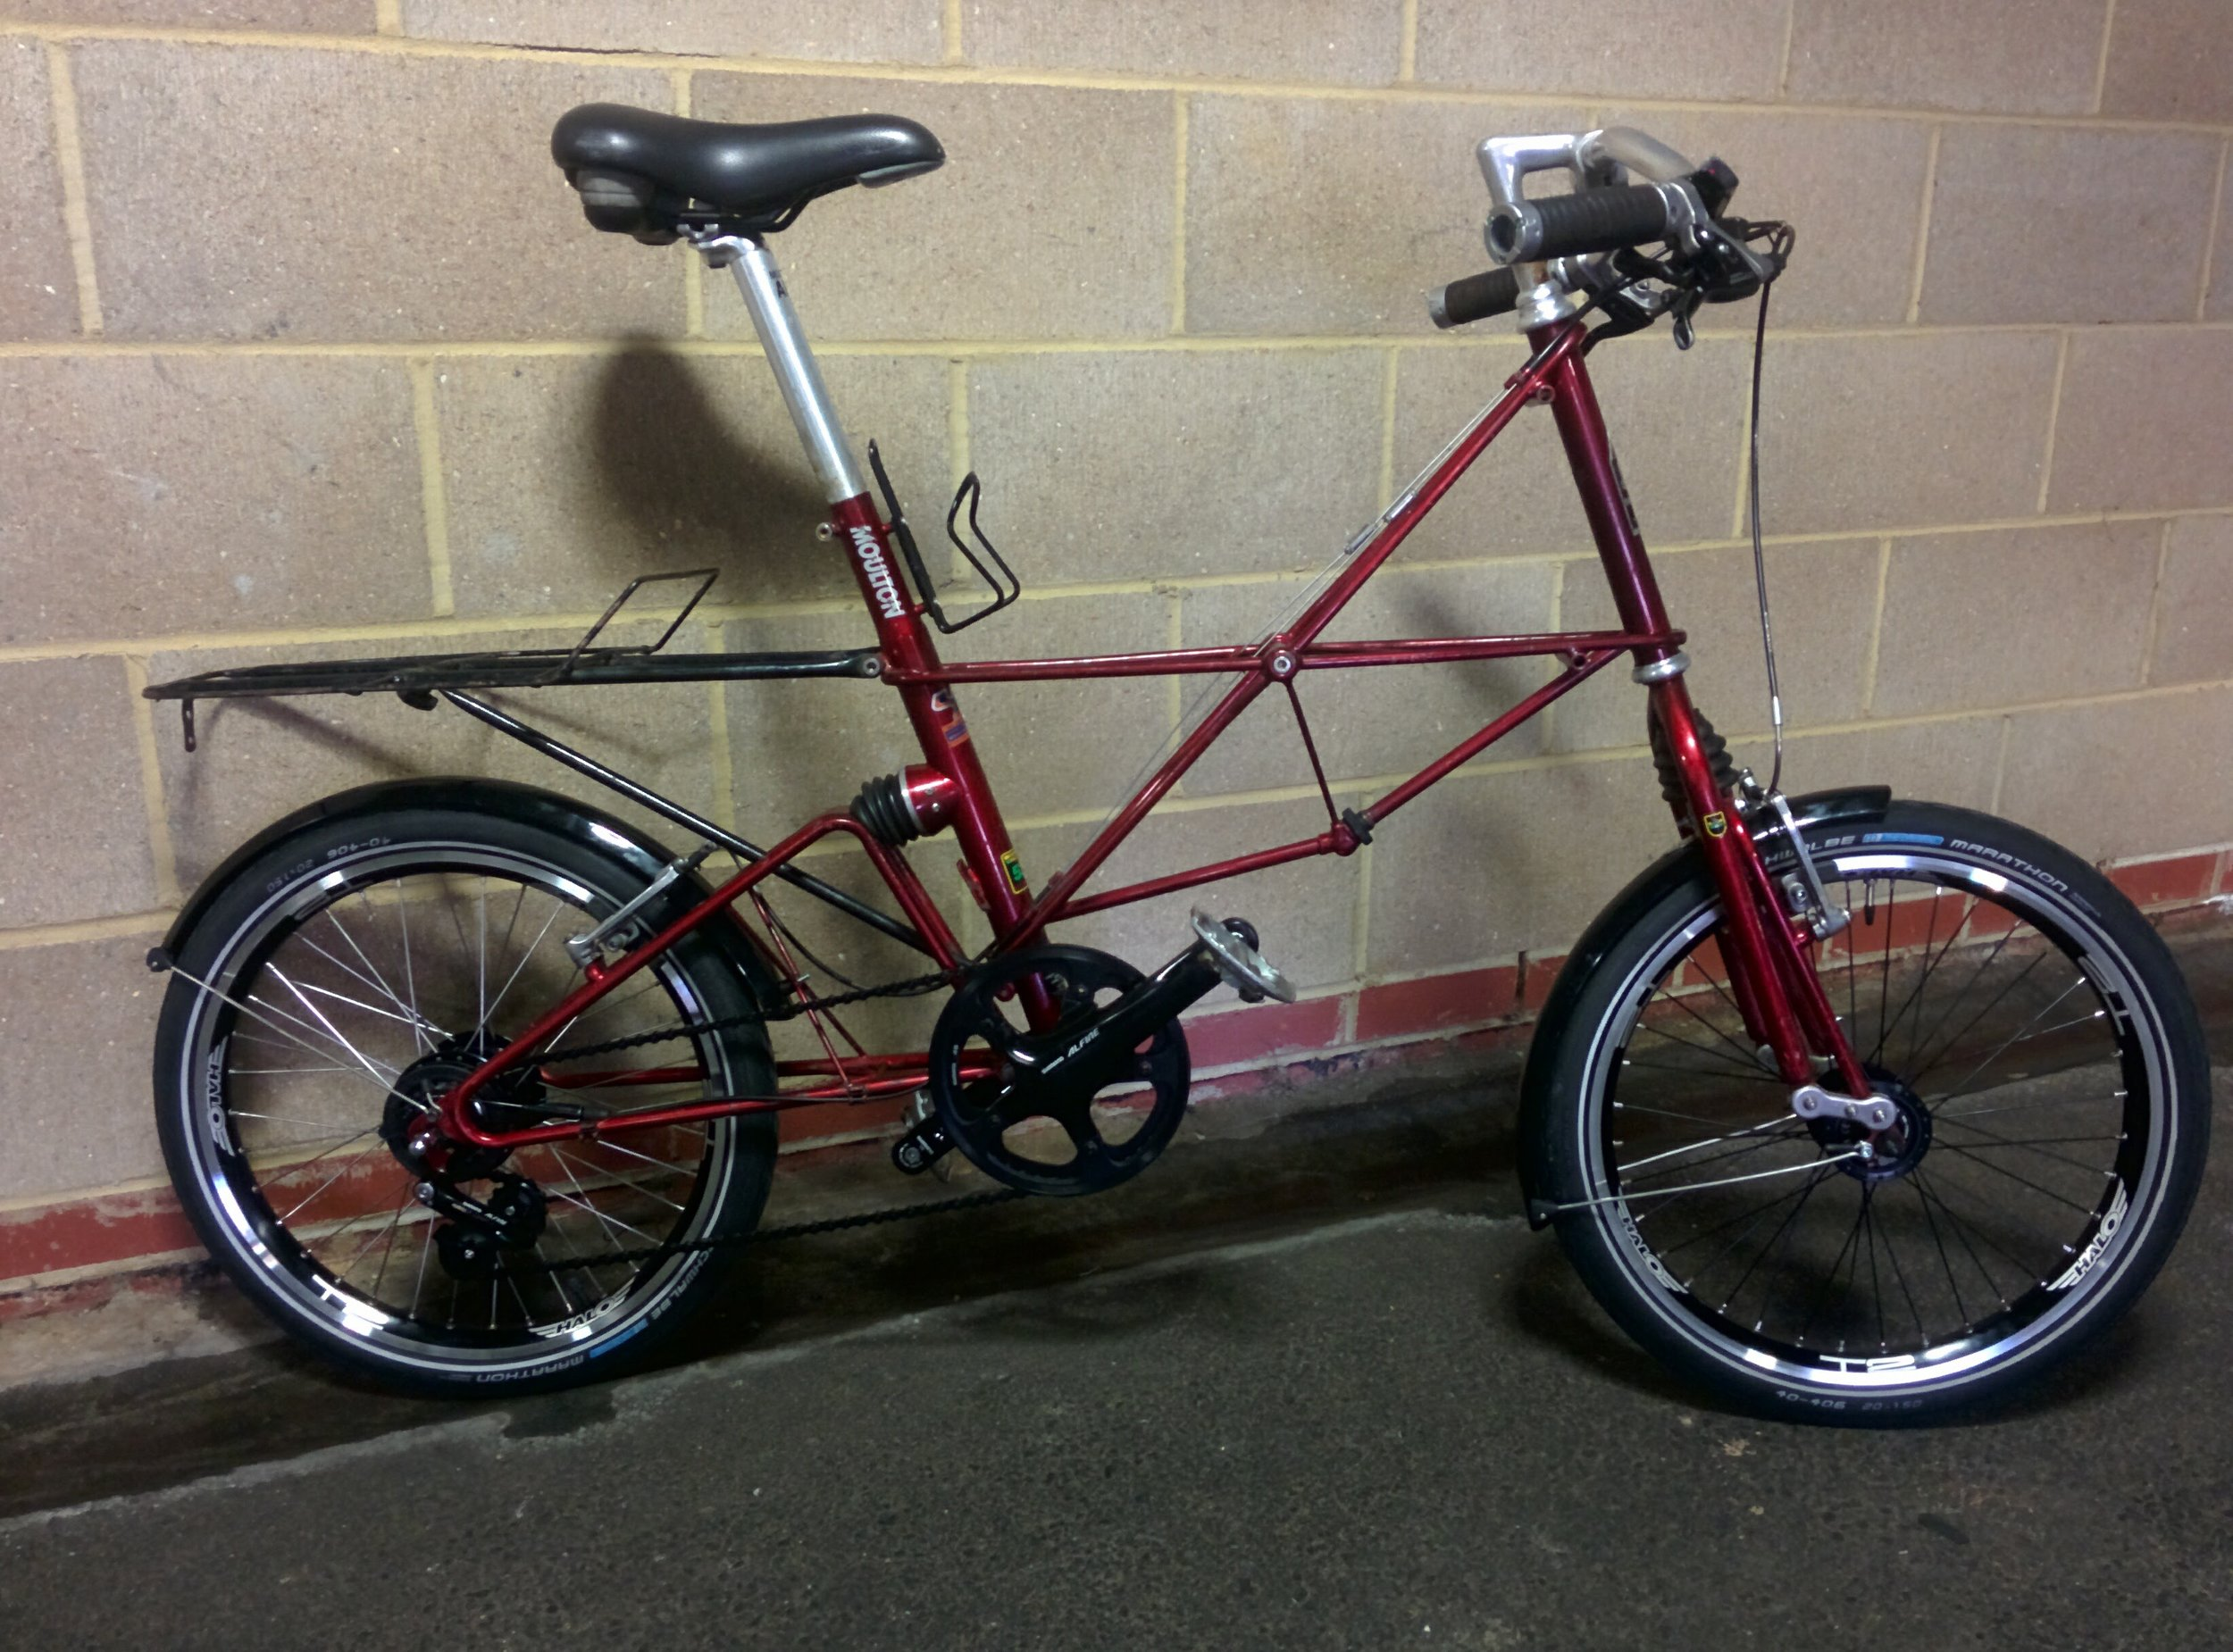 2000's Moulton APB - Not for sale   Servicing - New tyres, bars, wheels, groupset (Shimano Alfine)   November 2016 / January 2017